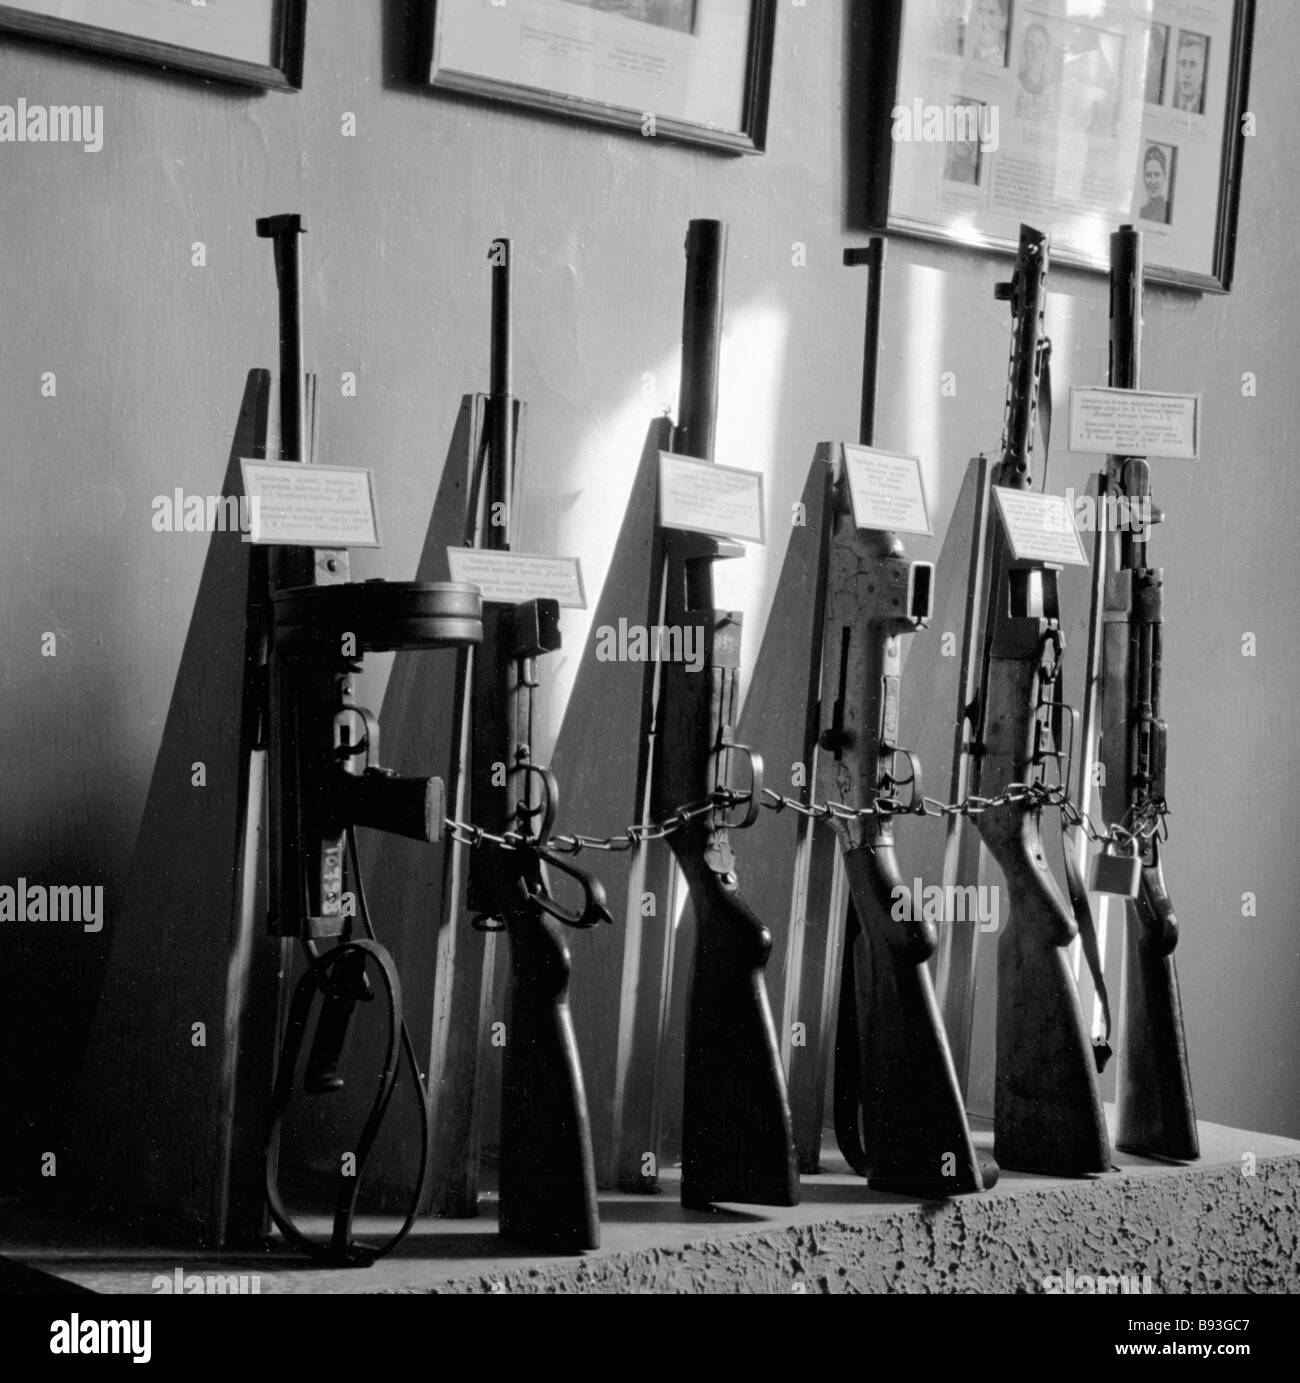 Home made weapons of Belarusian guerrillas on display at Minsk museum - Stock Image